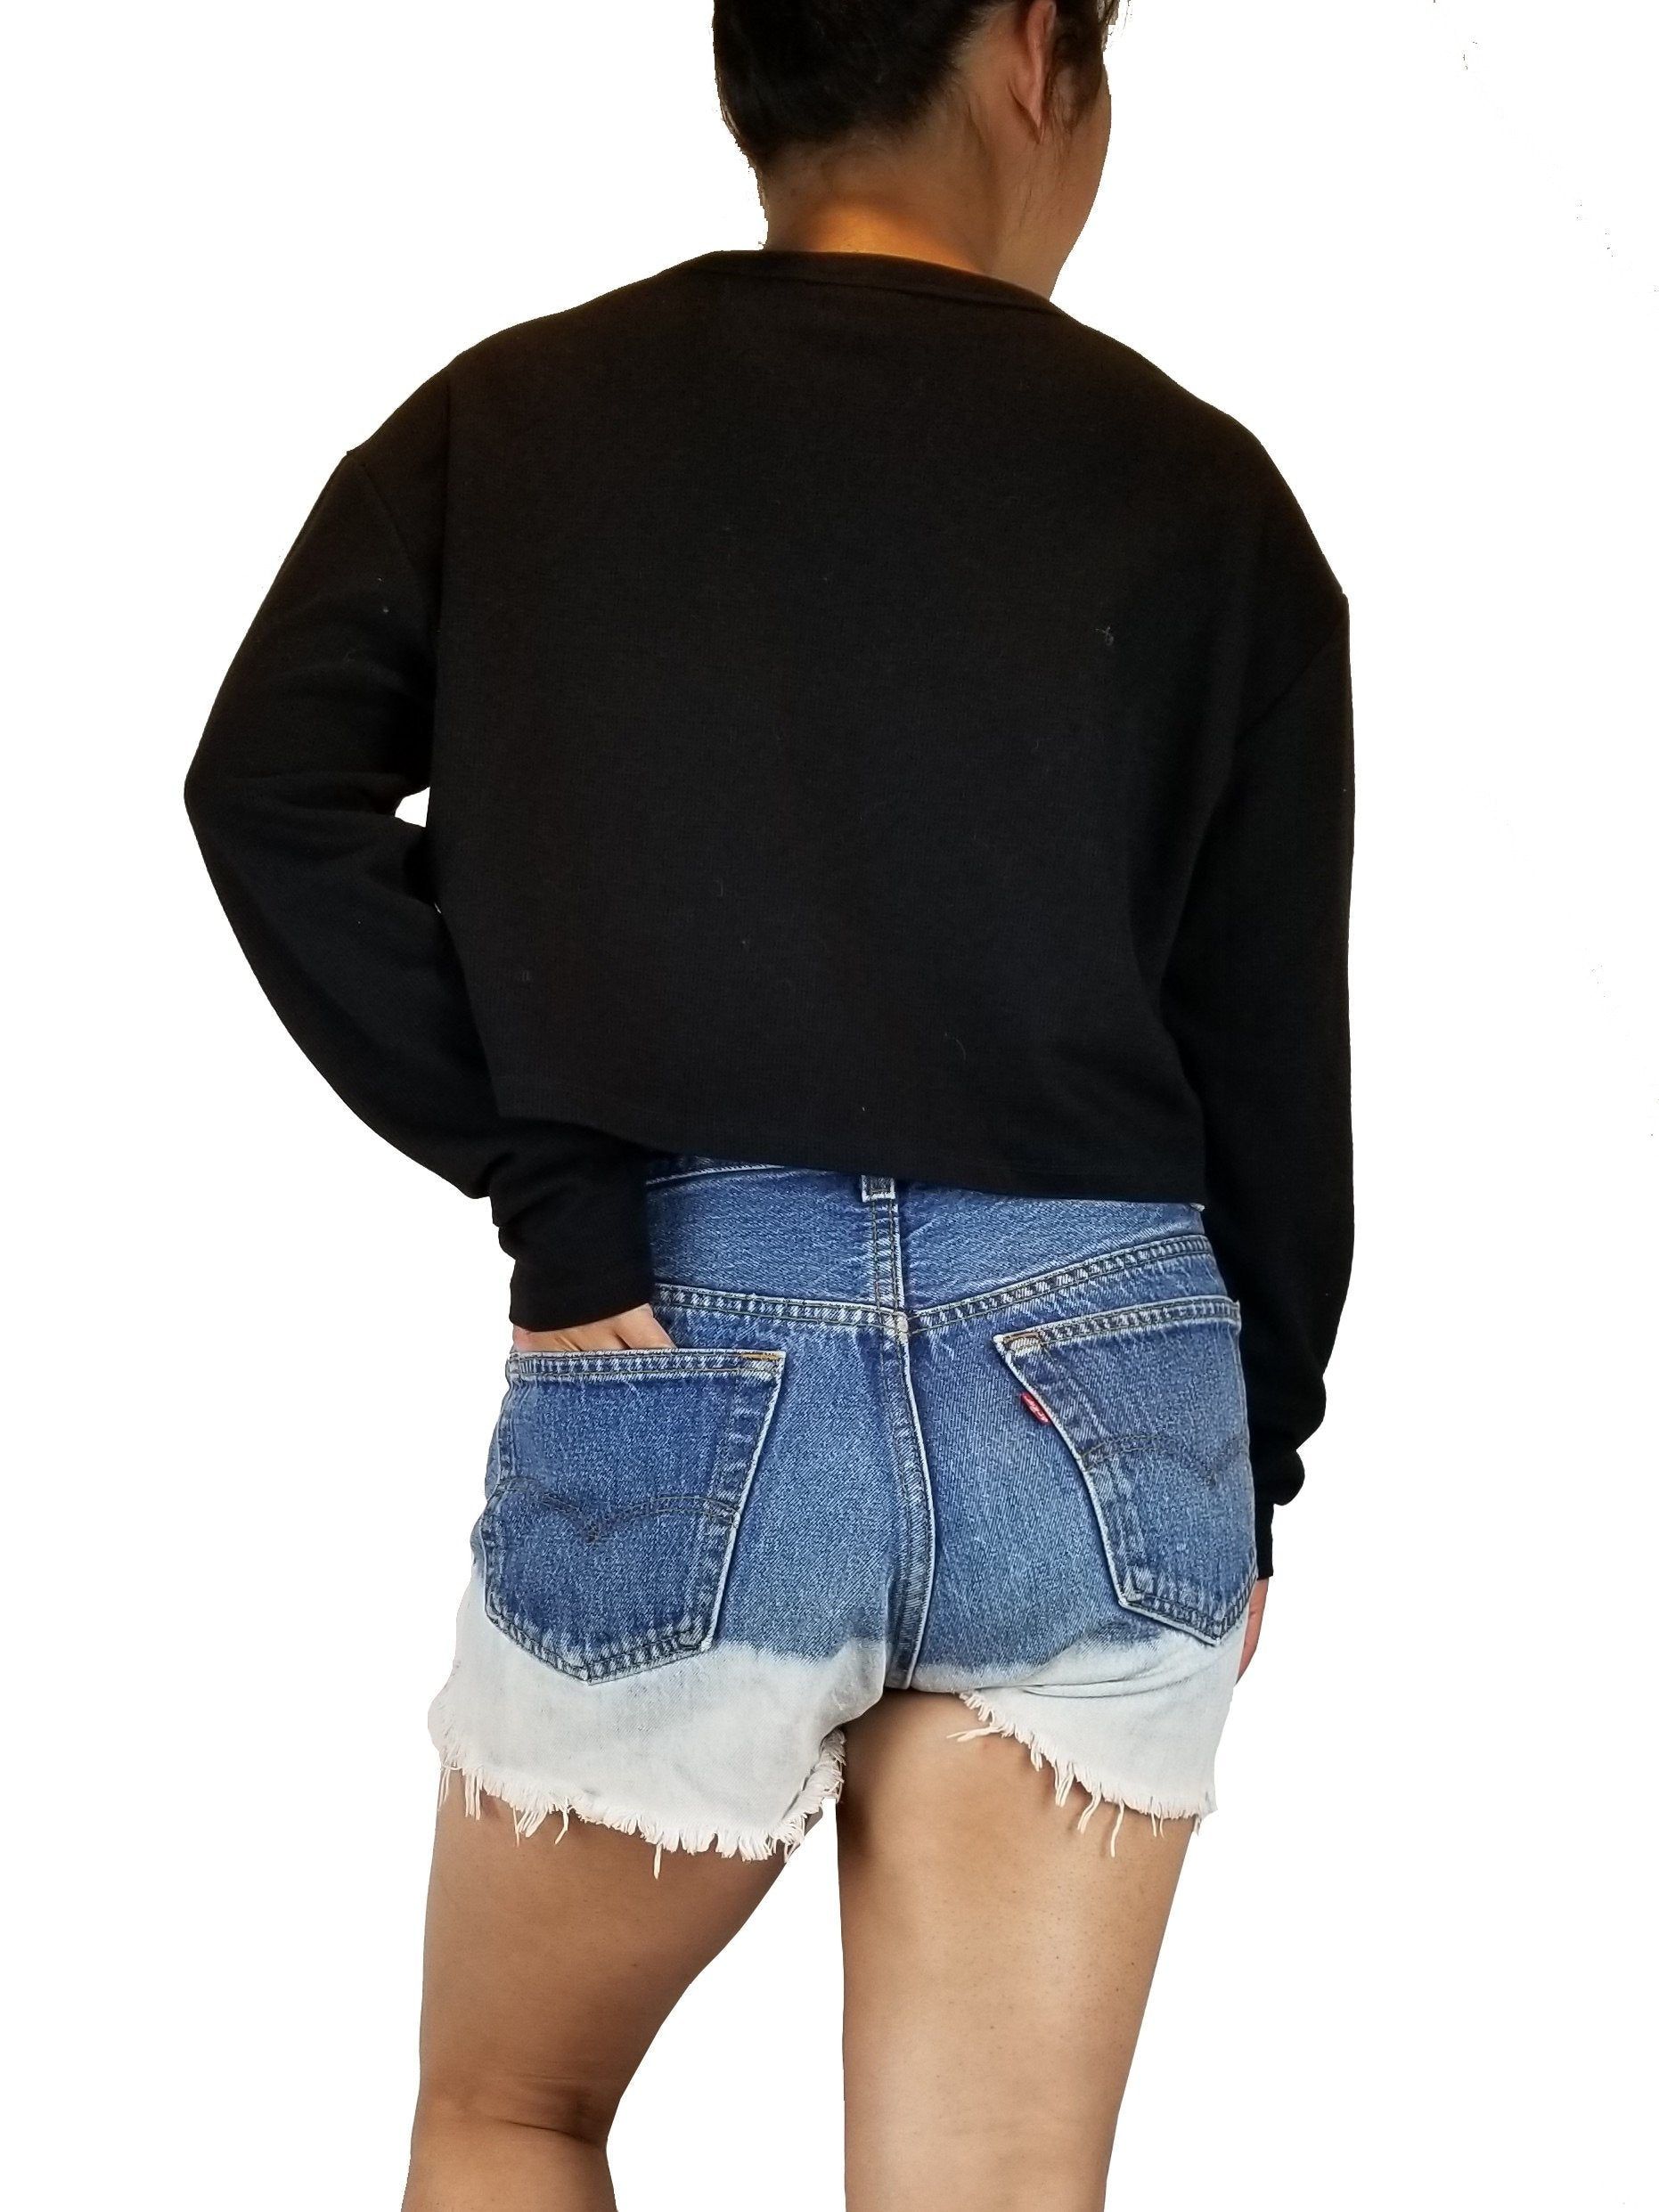 Sunday Best Black Crop Top, High rise shorts with unique design that goes with your unique style, Blue, 100% Cotton, Shorts, jean shorts, women's jean shorts, fashionable shorts, shorts with unique design, women's fourth of July shorts